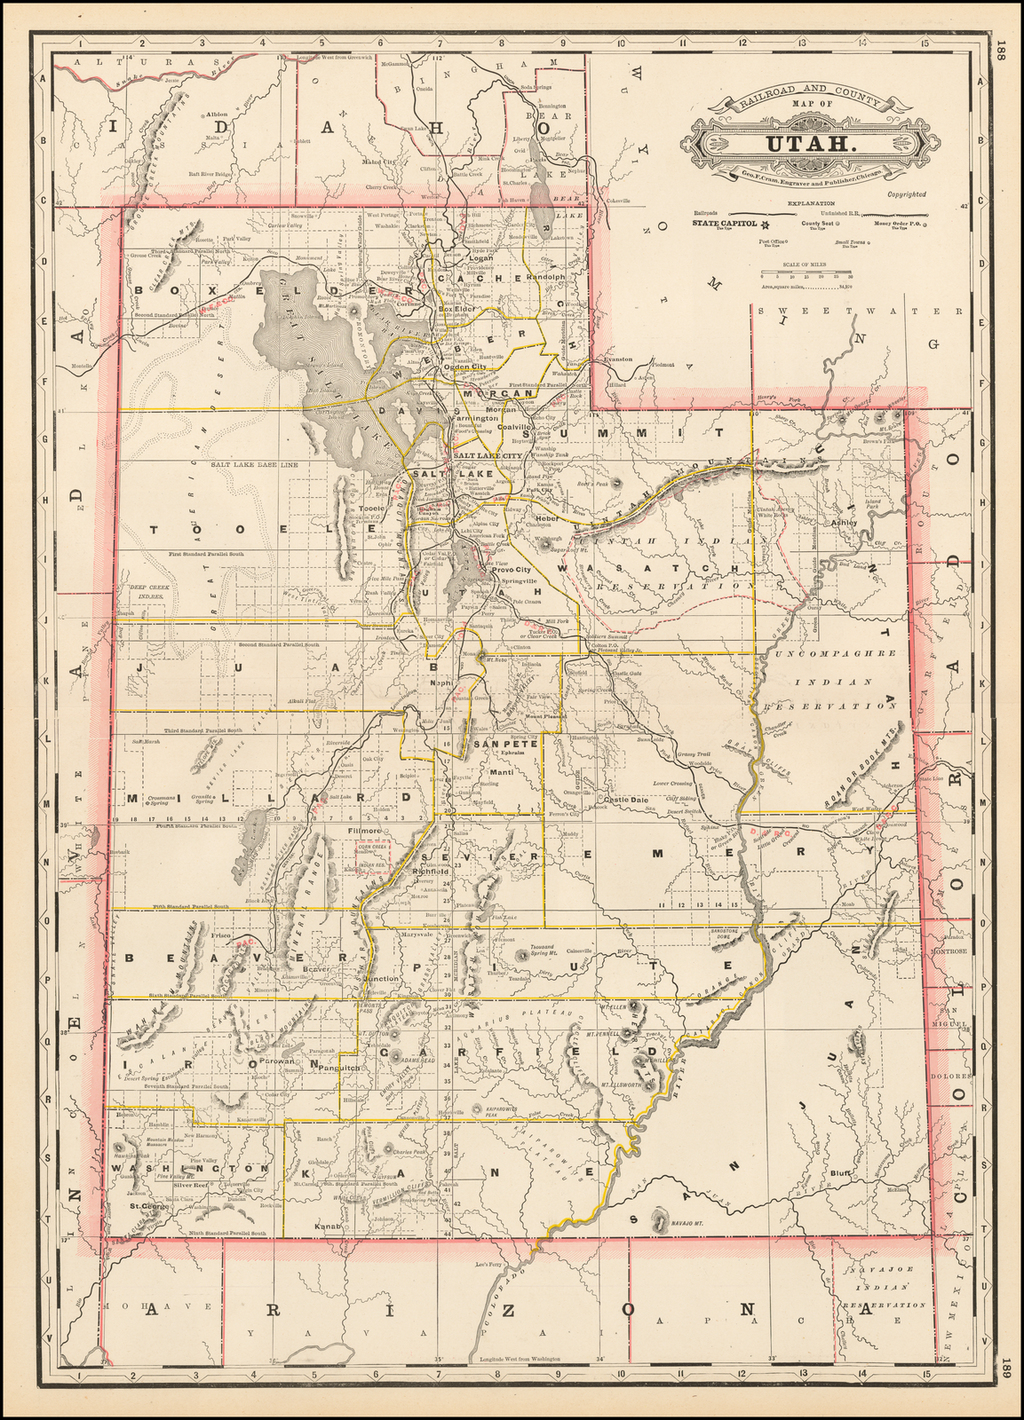 Railroad and County Map of Utah By George F. Cram